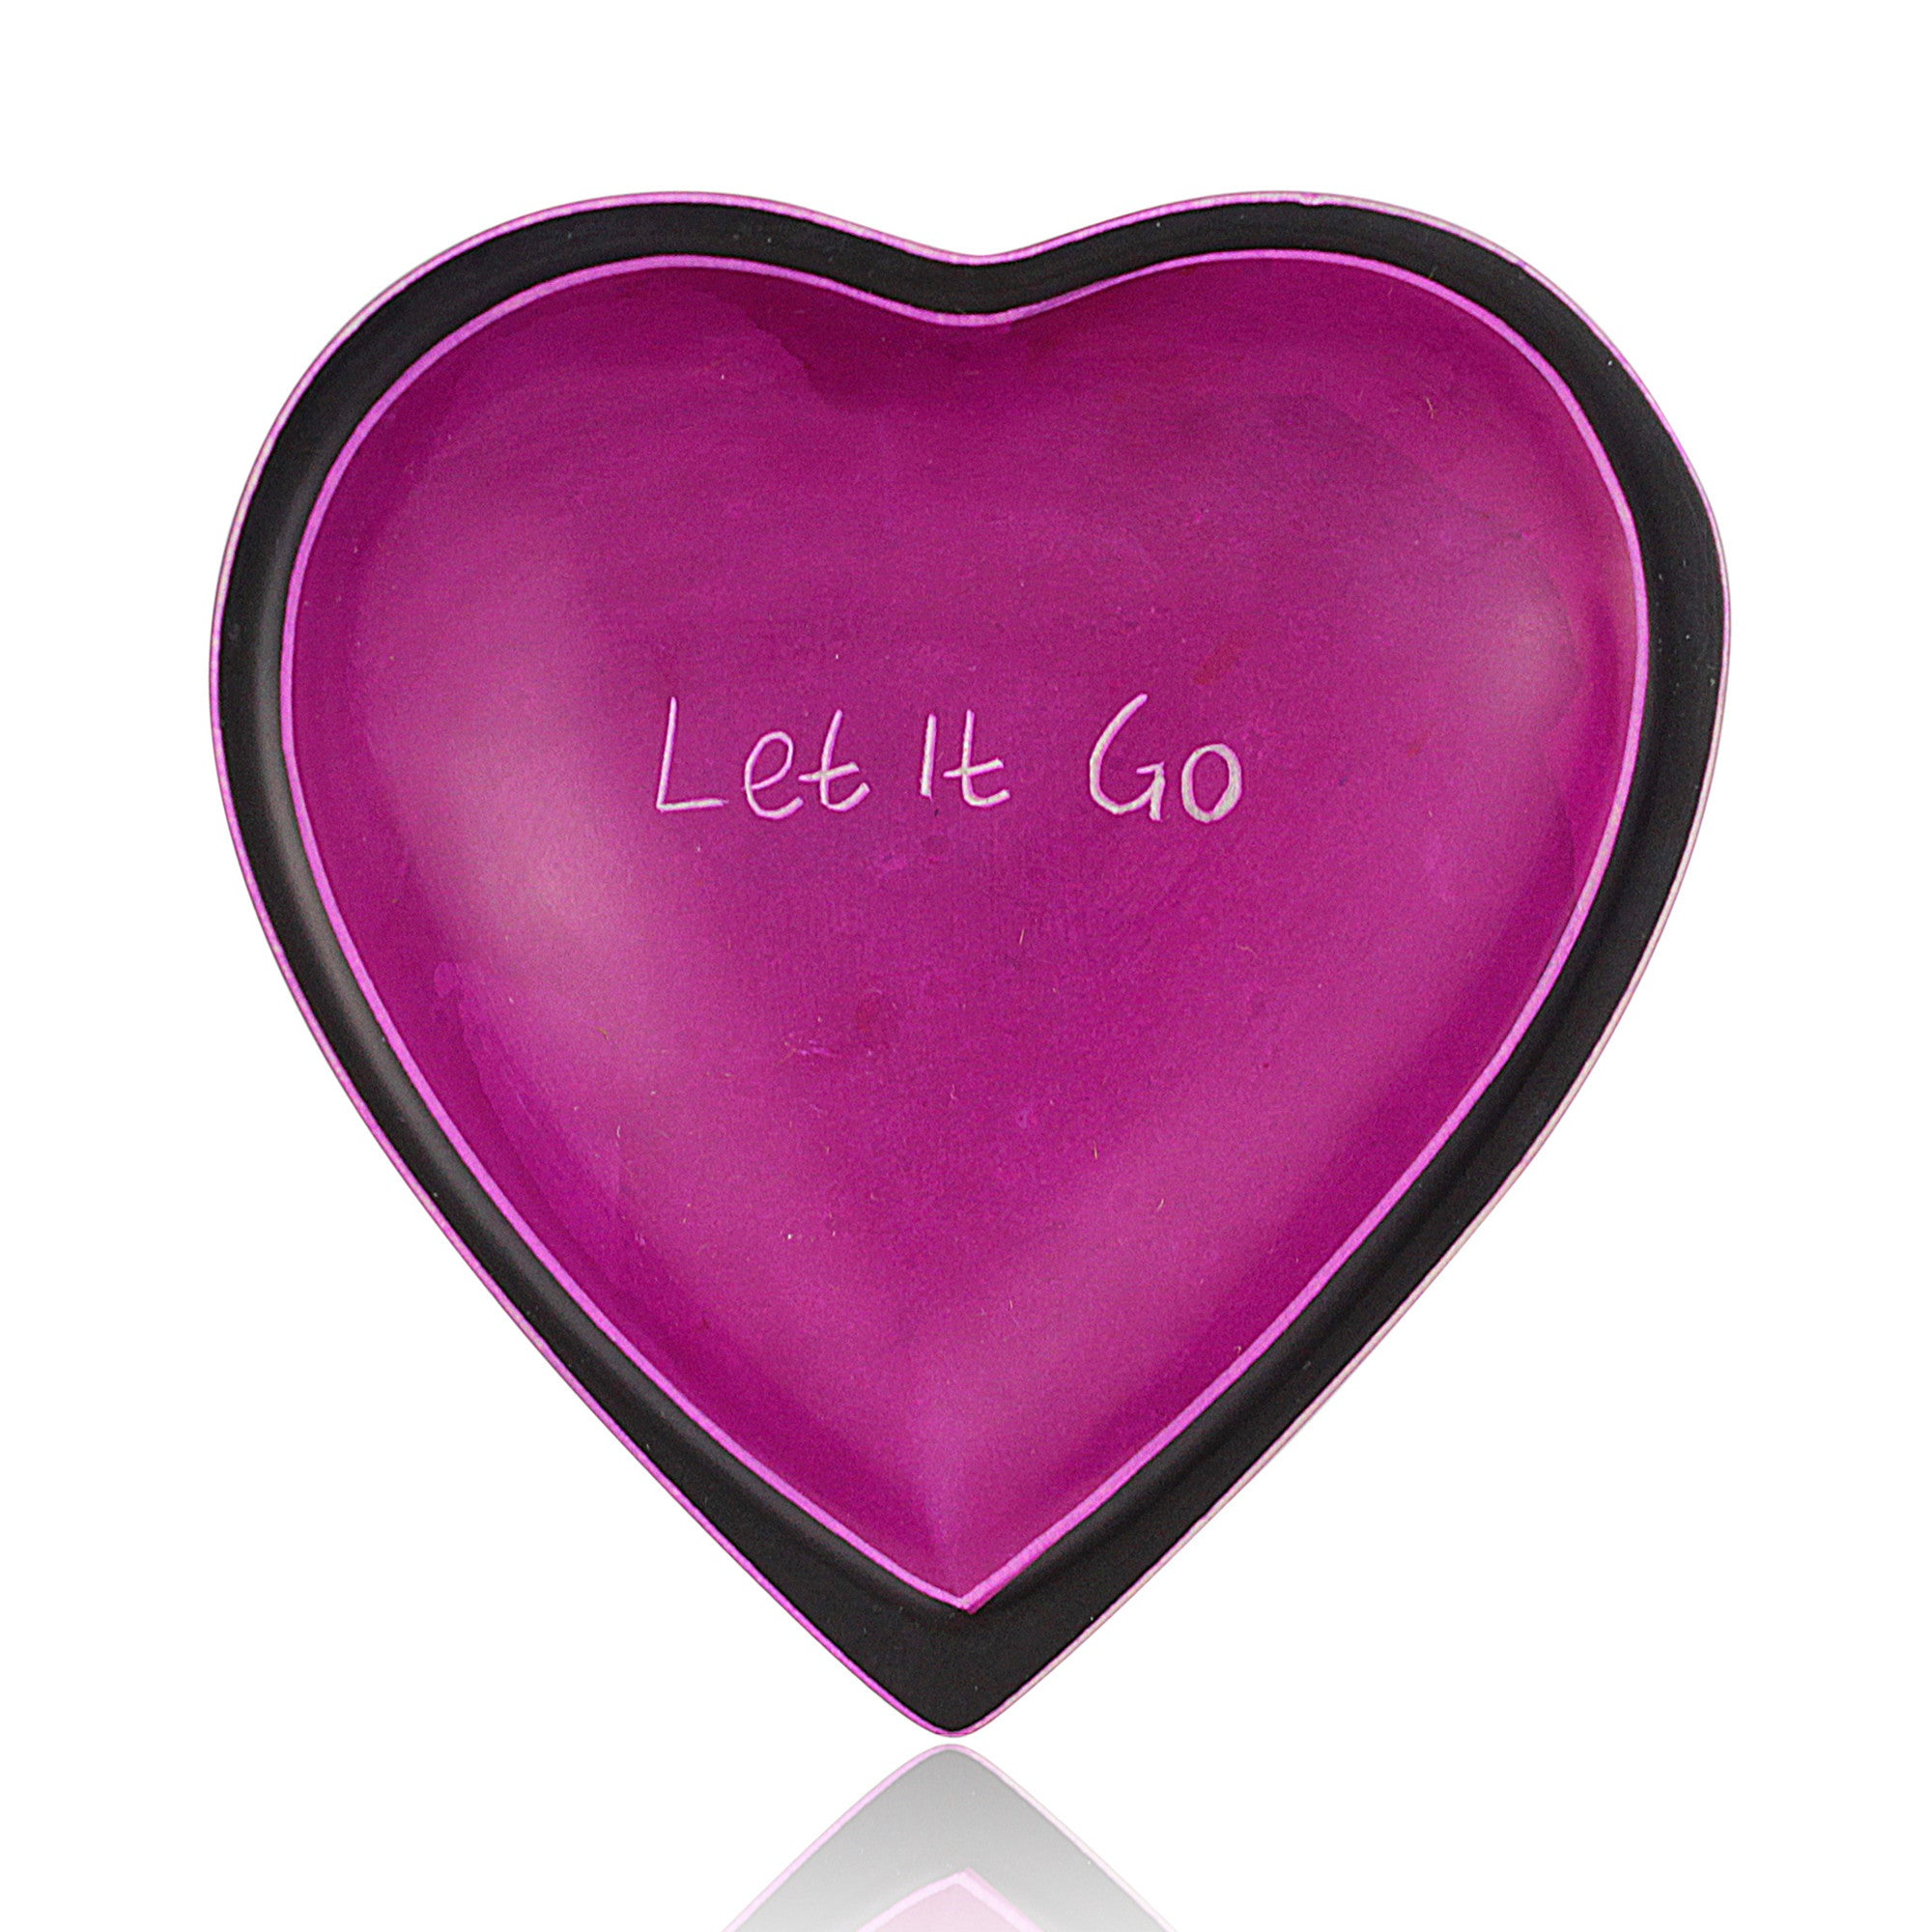 Let It Go Kenyan Heart Shaped Soapstone Dish by Venture Imports